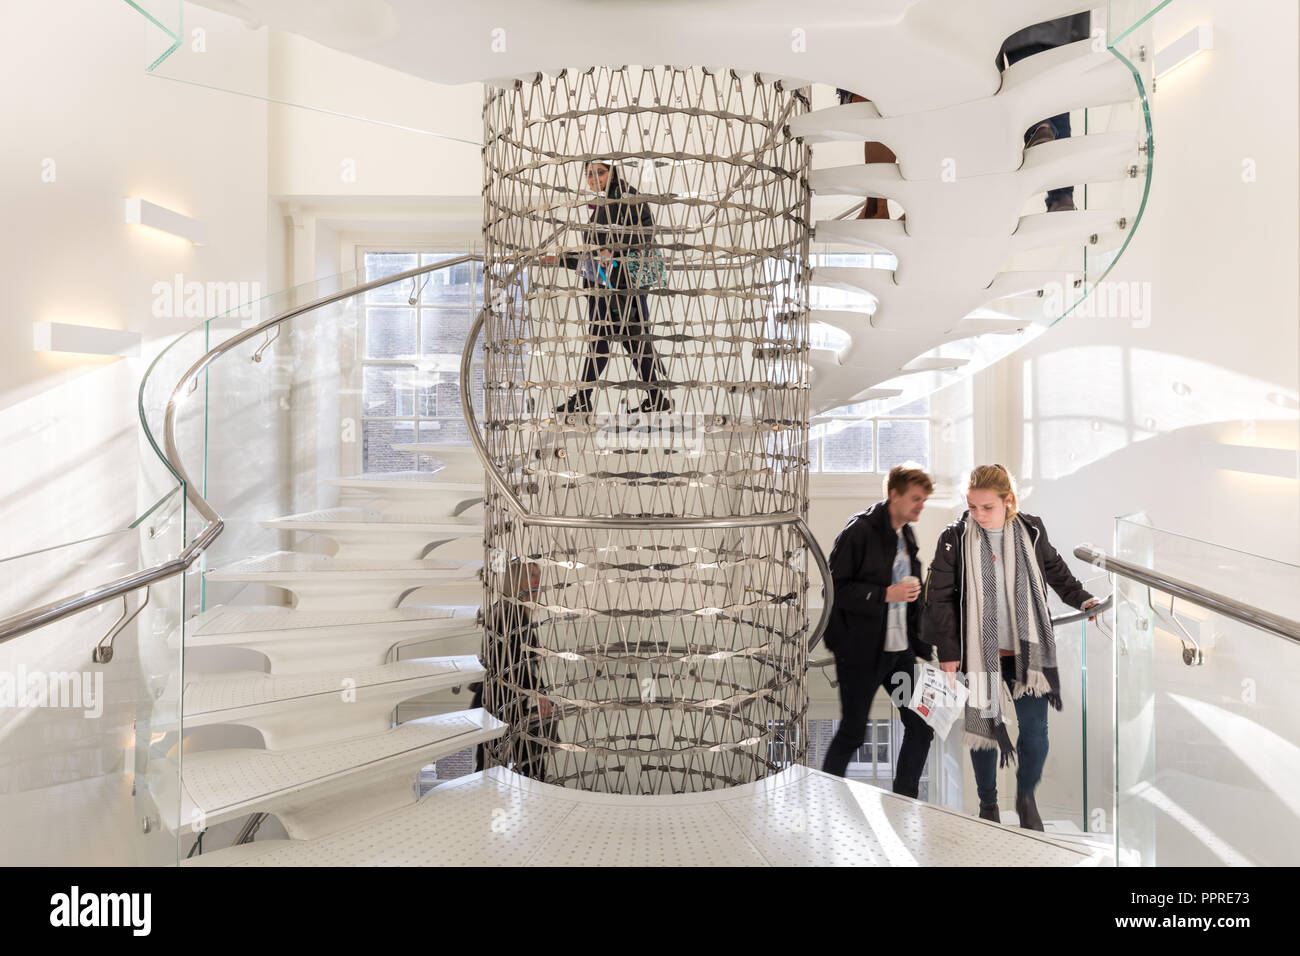 The Miles Stairs, Elegant Contemporary Steel Mesh Circular Staircase With  Transparent Balustrade By Eva Jiricna Architects, Somerset House, London, UK